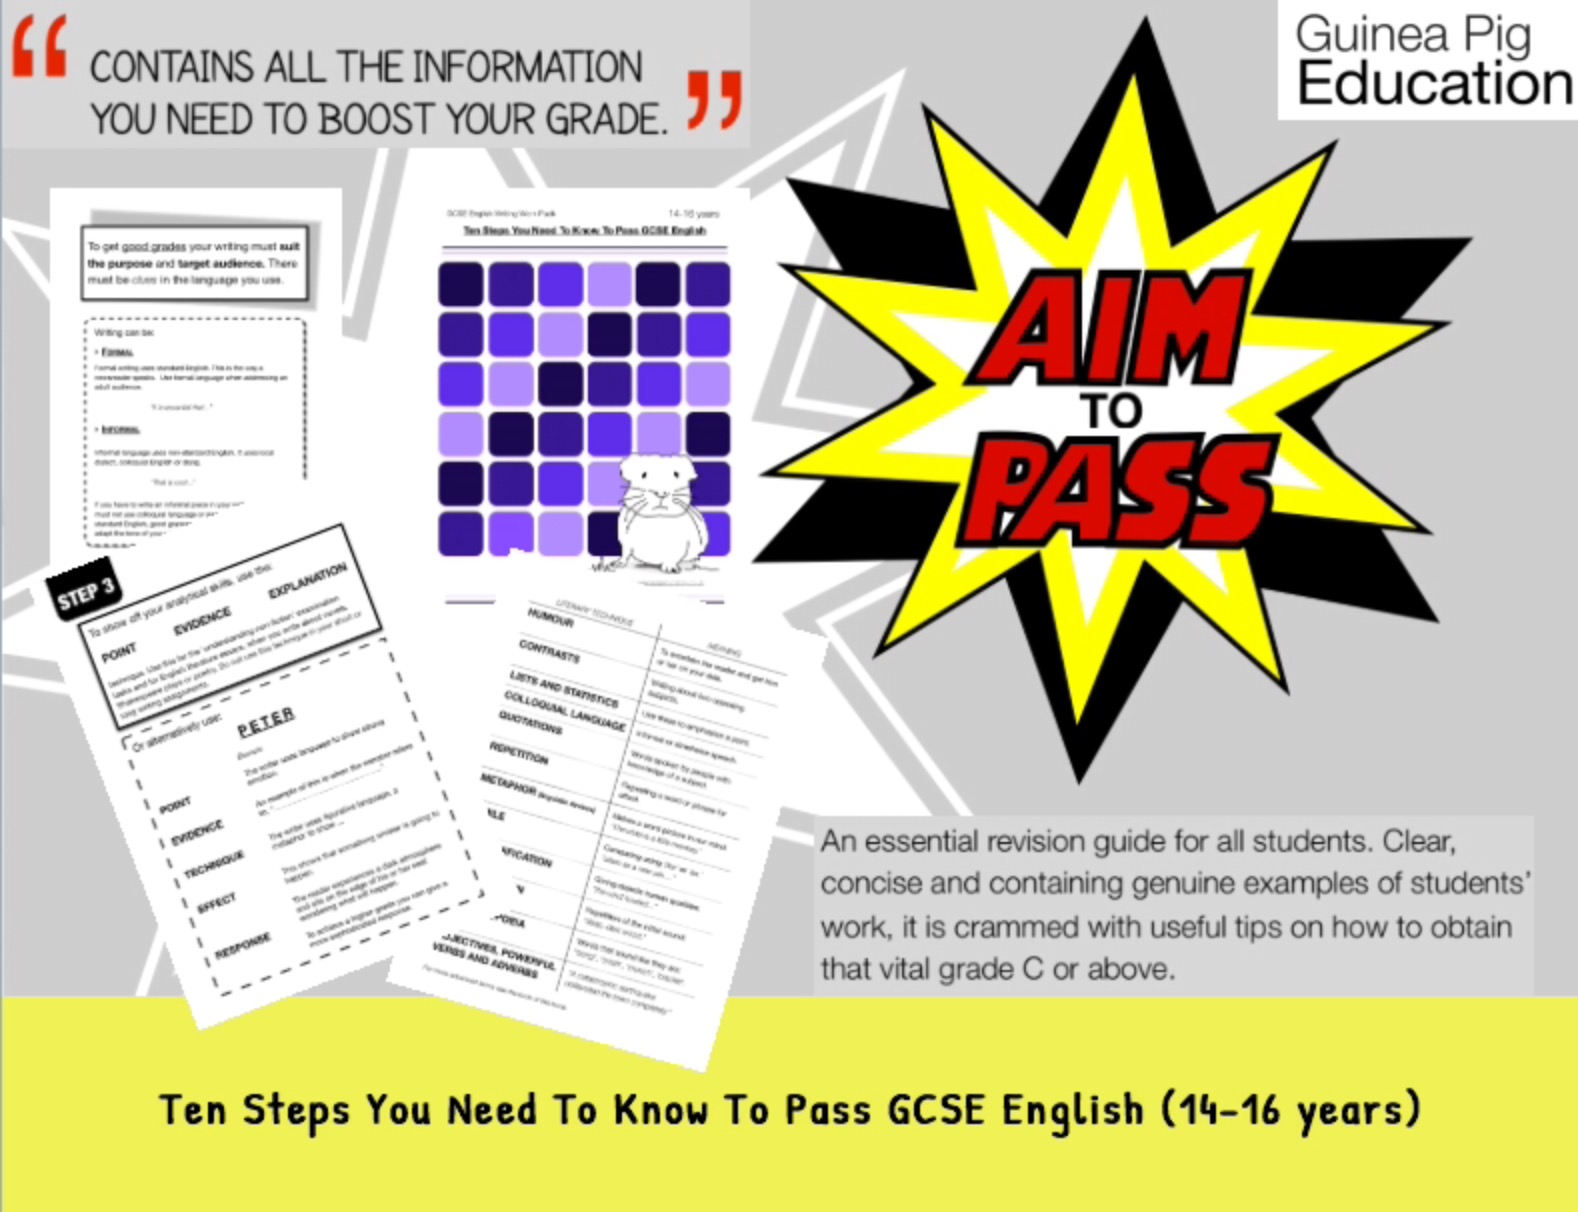 Ten Steps You Need To Know To Pass GCSE English (14-16 years)